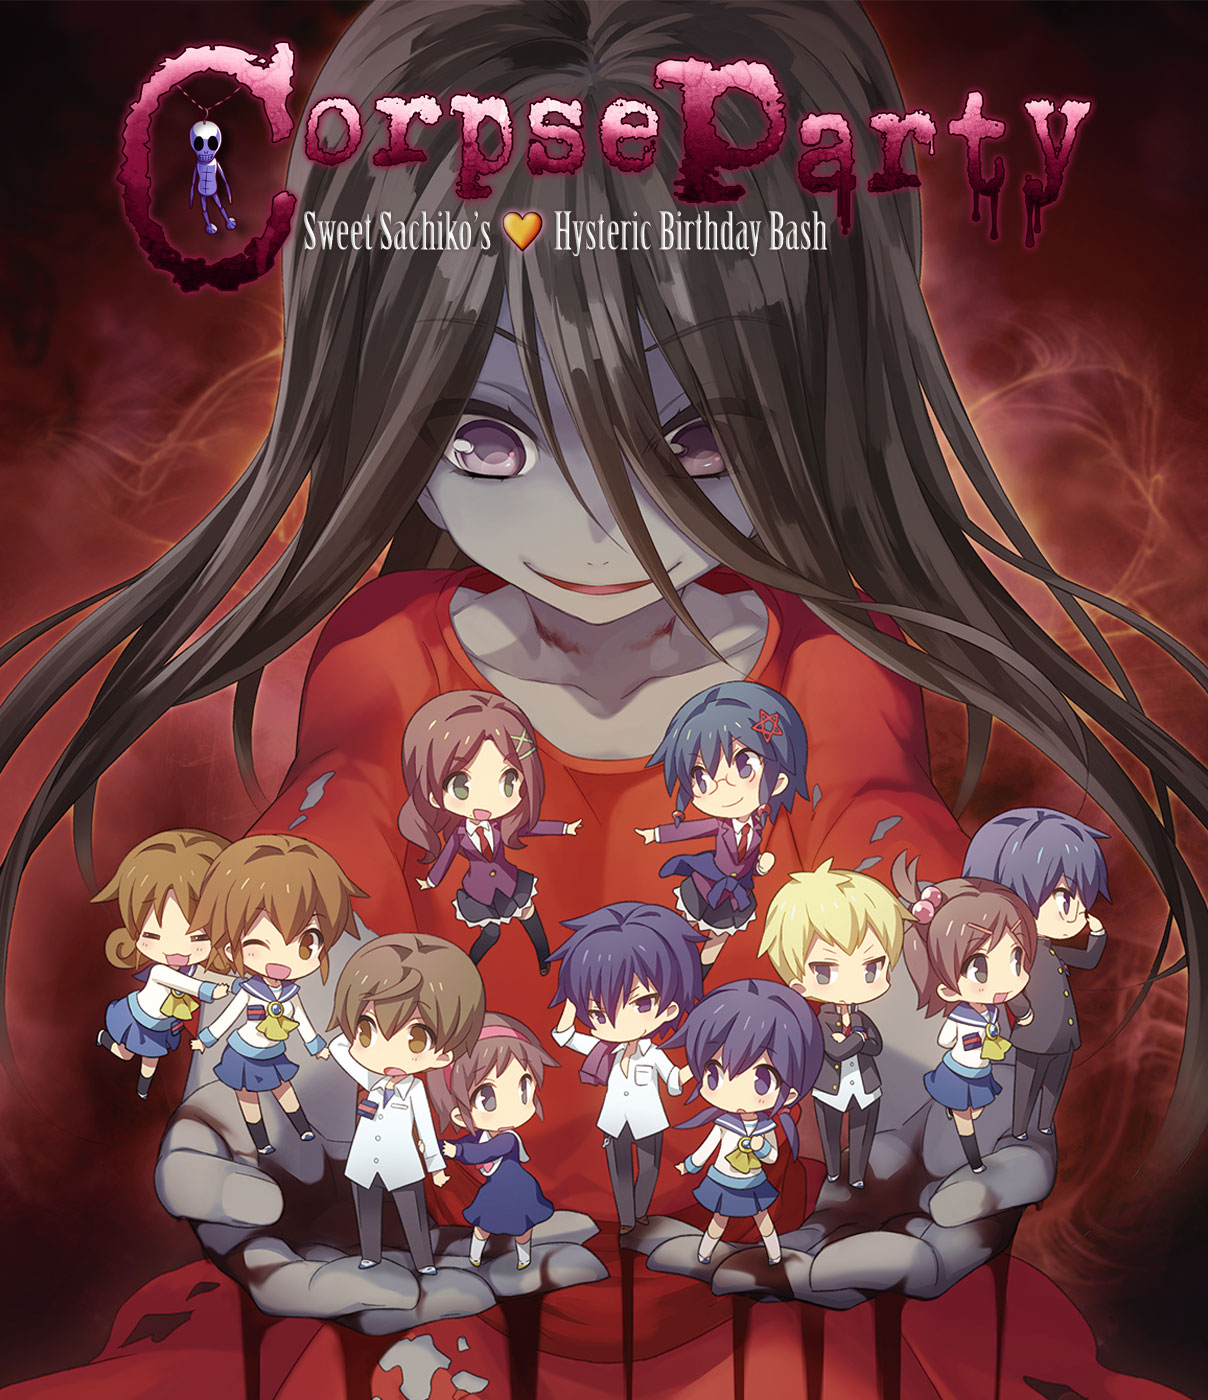 Corpse Party Sweet Sachiko S Hysteric Birthday Bash Steam